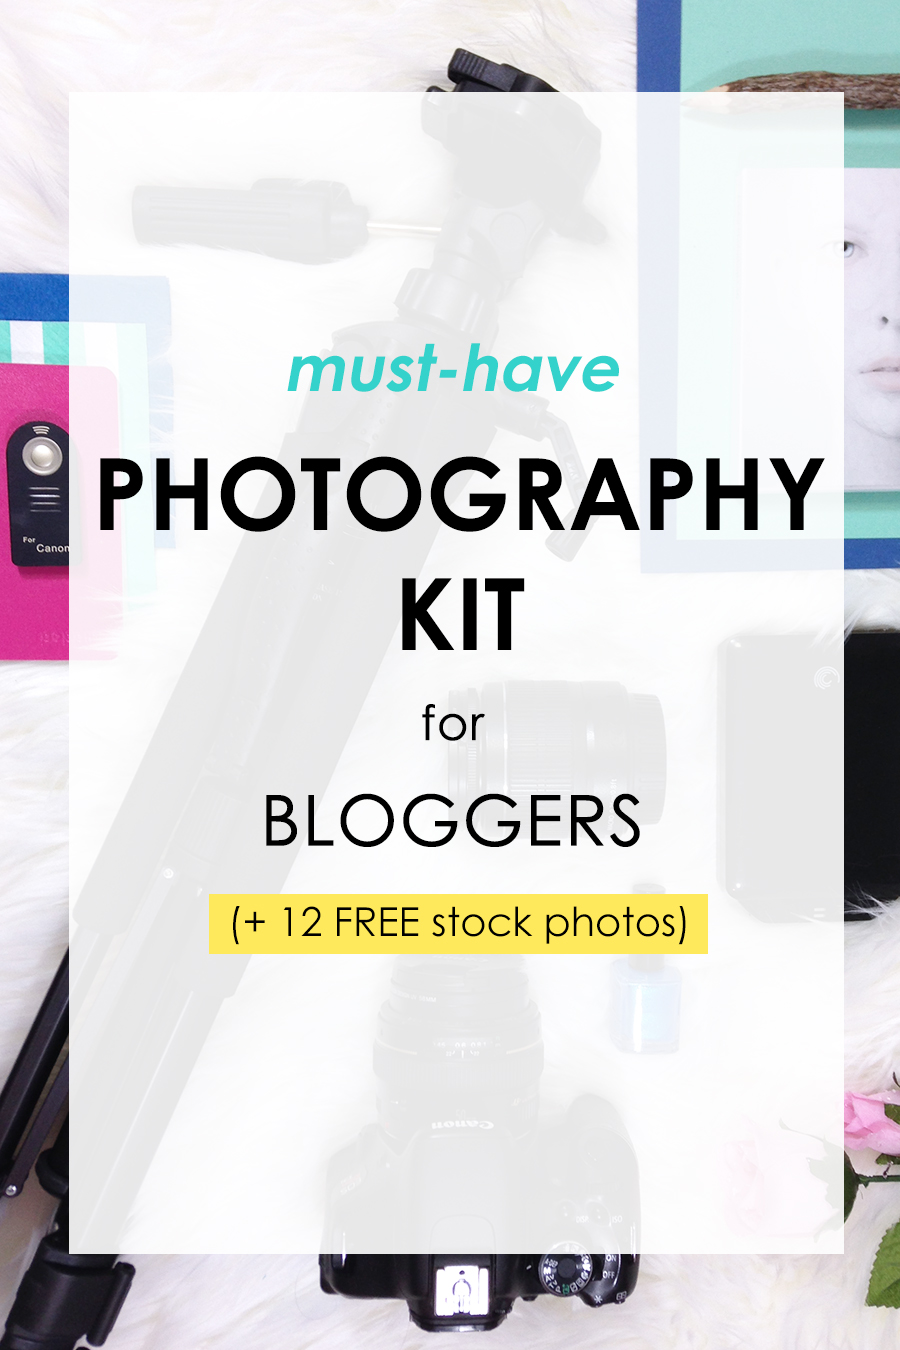 Must have photography kit for bloggers and free stock photos. Click to read!